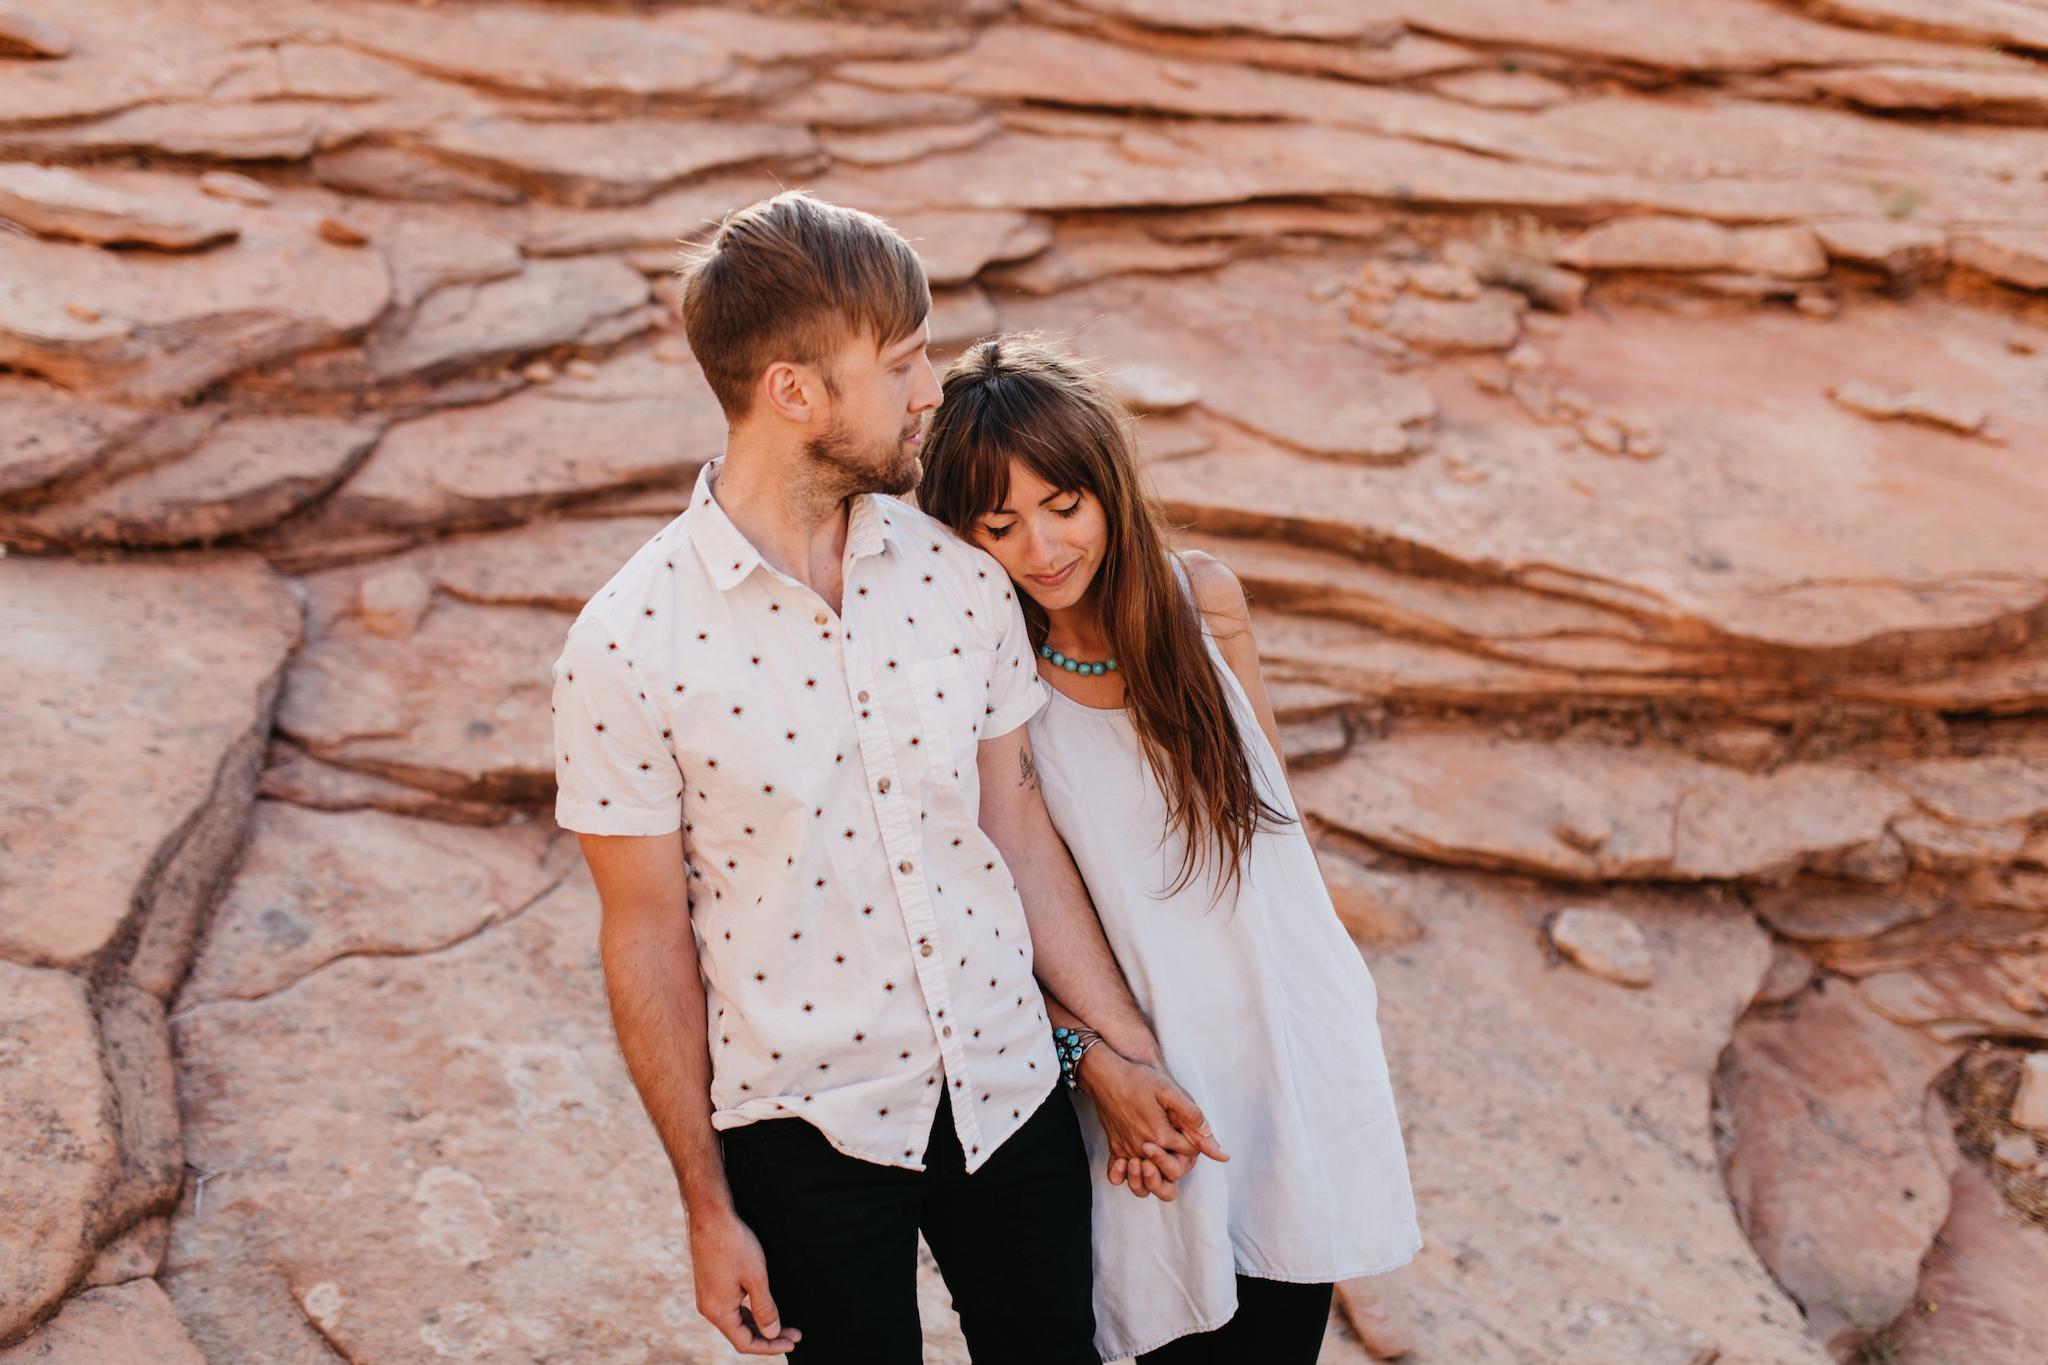 zion - engagement - photography 204.jpg